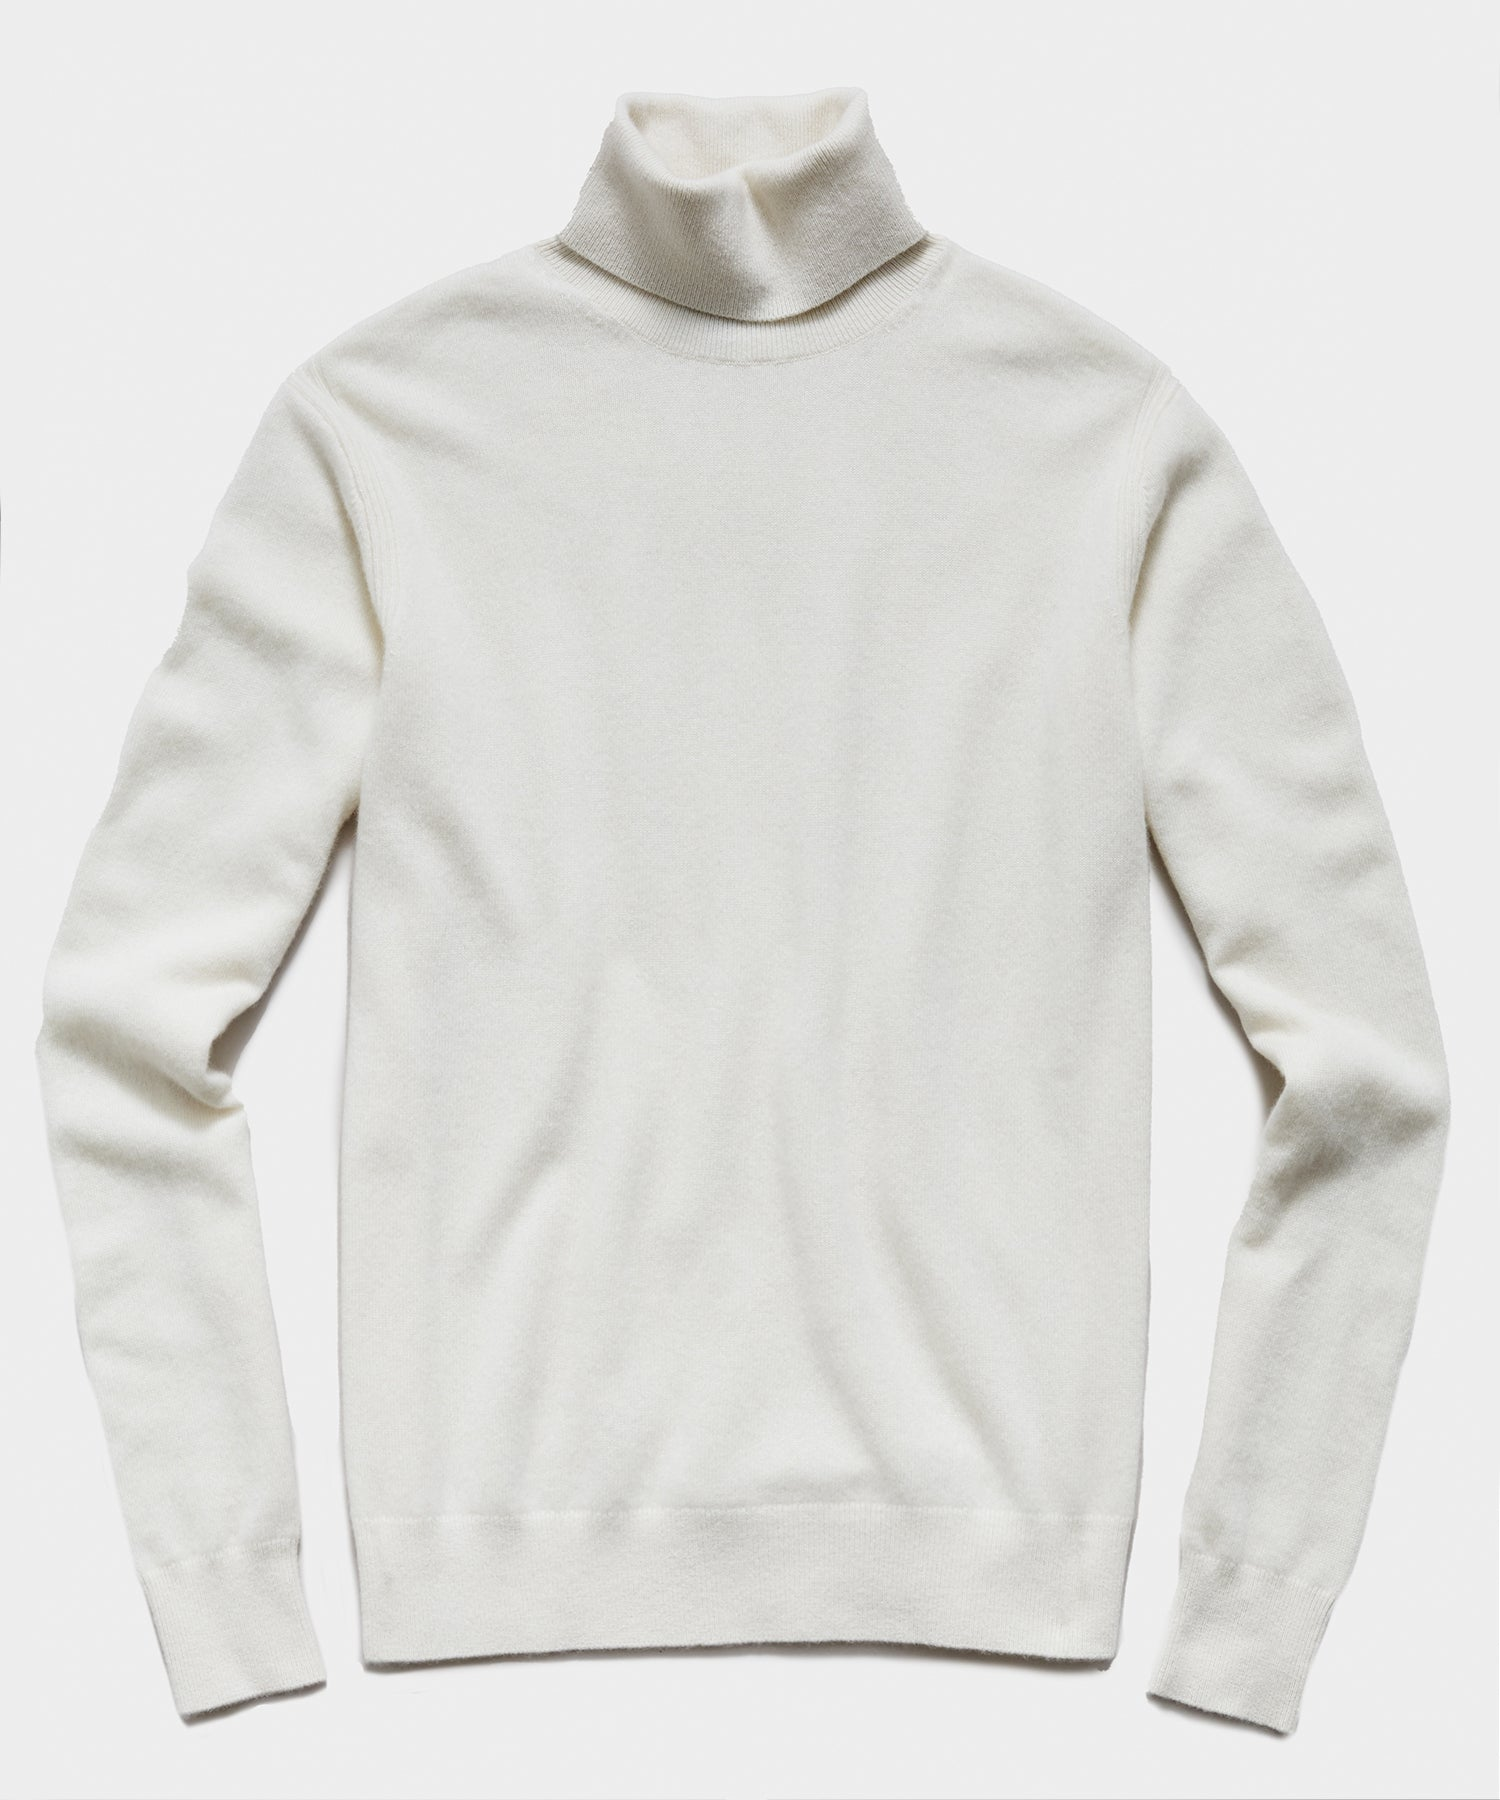 Cashmere Turtleneck in Cream